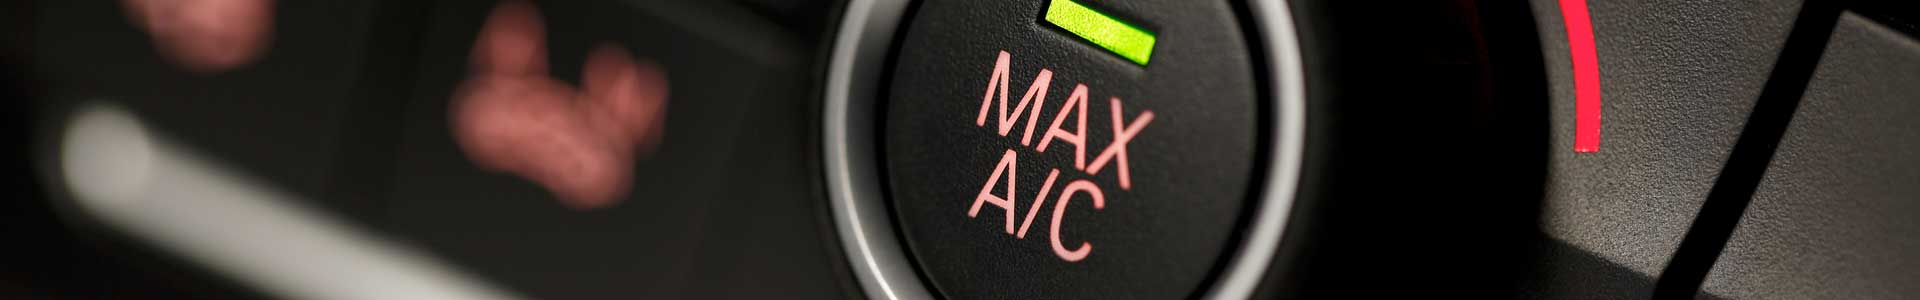 Automotive-Heater-and-Cooling-System